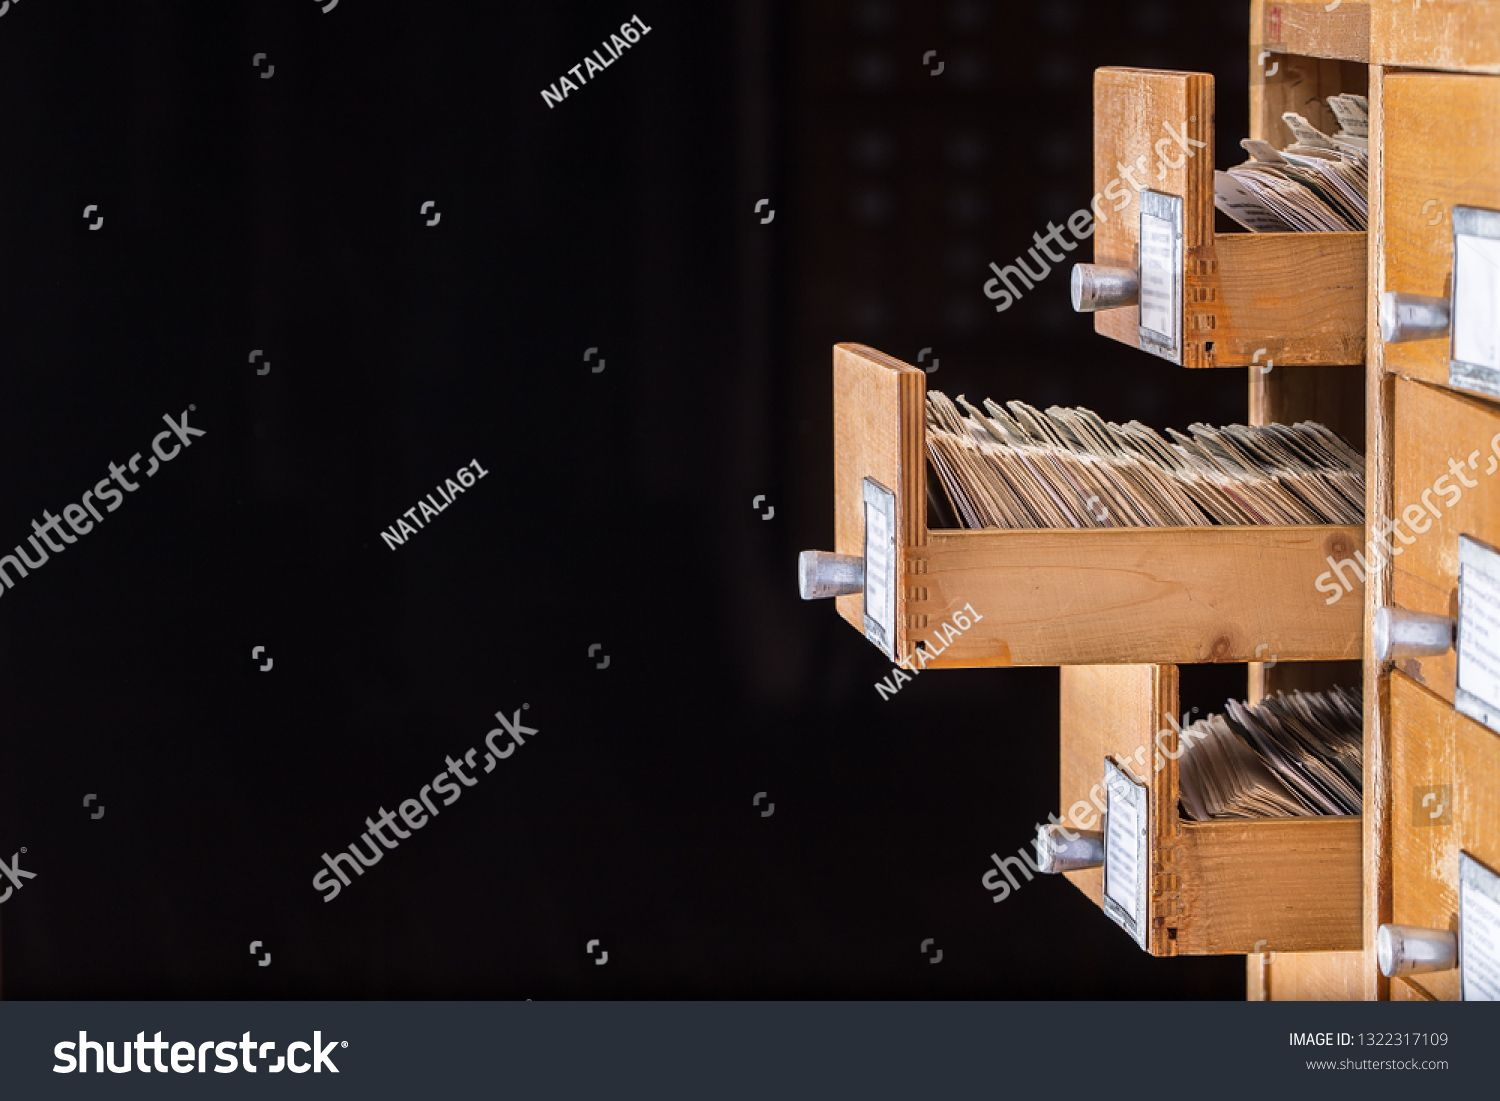 Library or archive reference card catalog Database knowledge base concept Old library or archive reference catalogue with opened card drawer